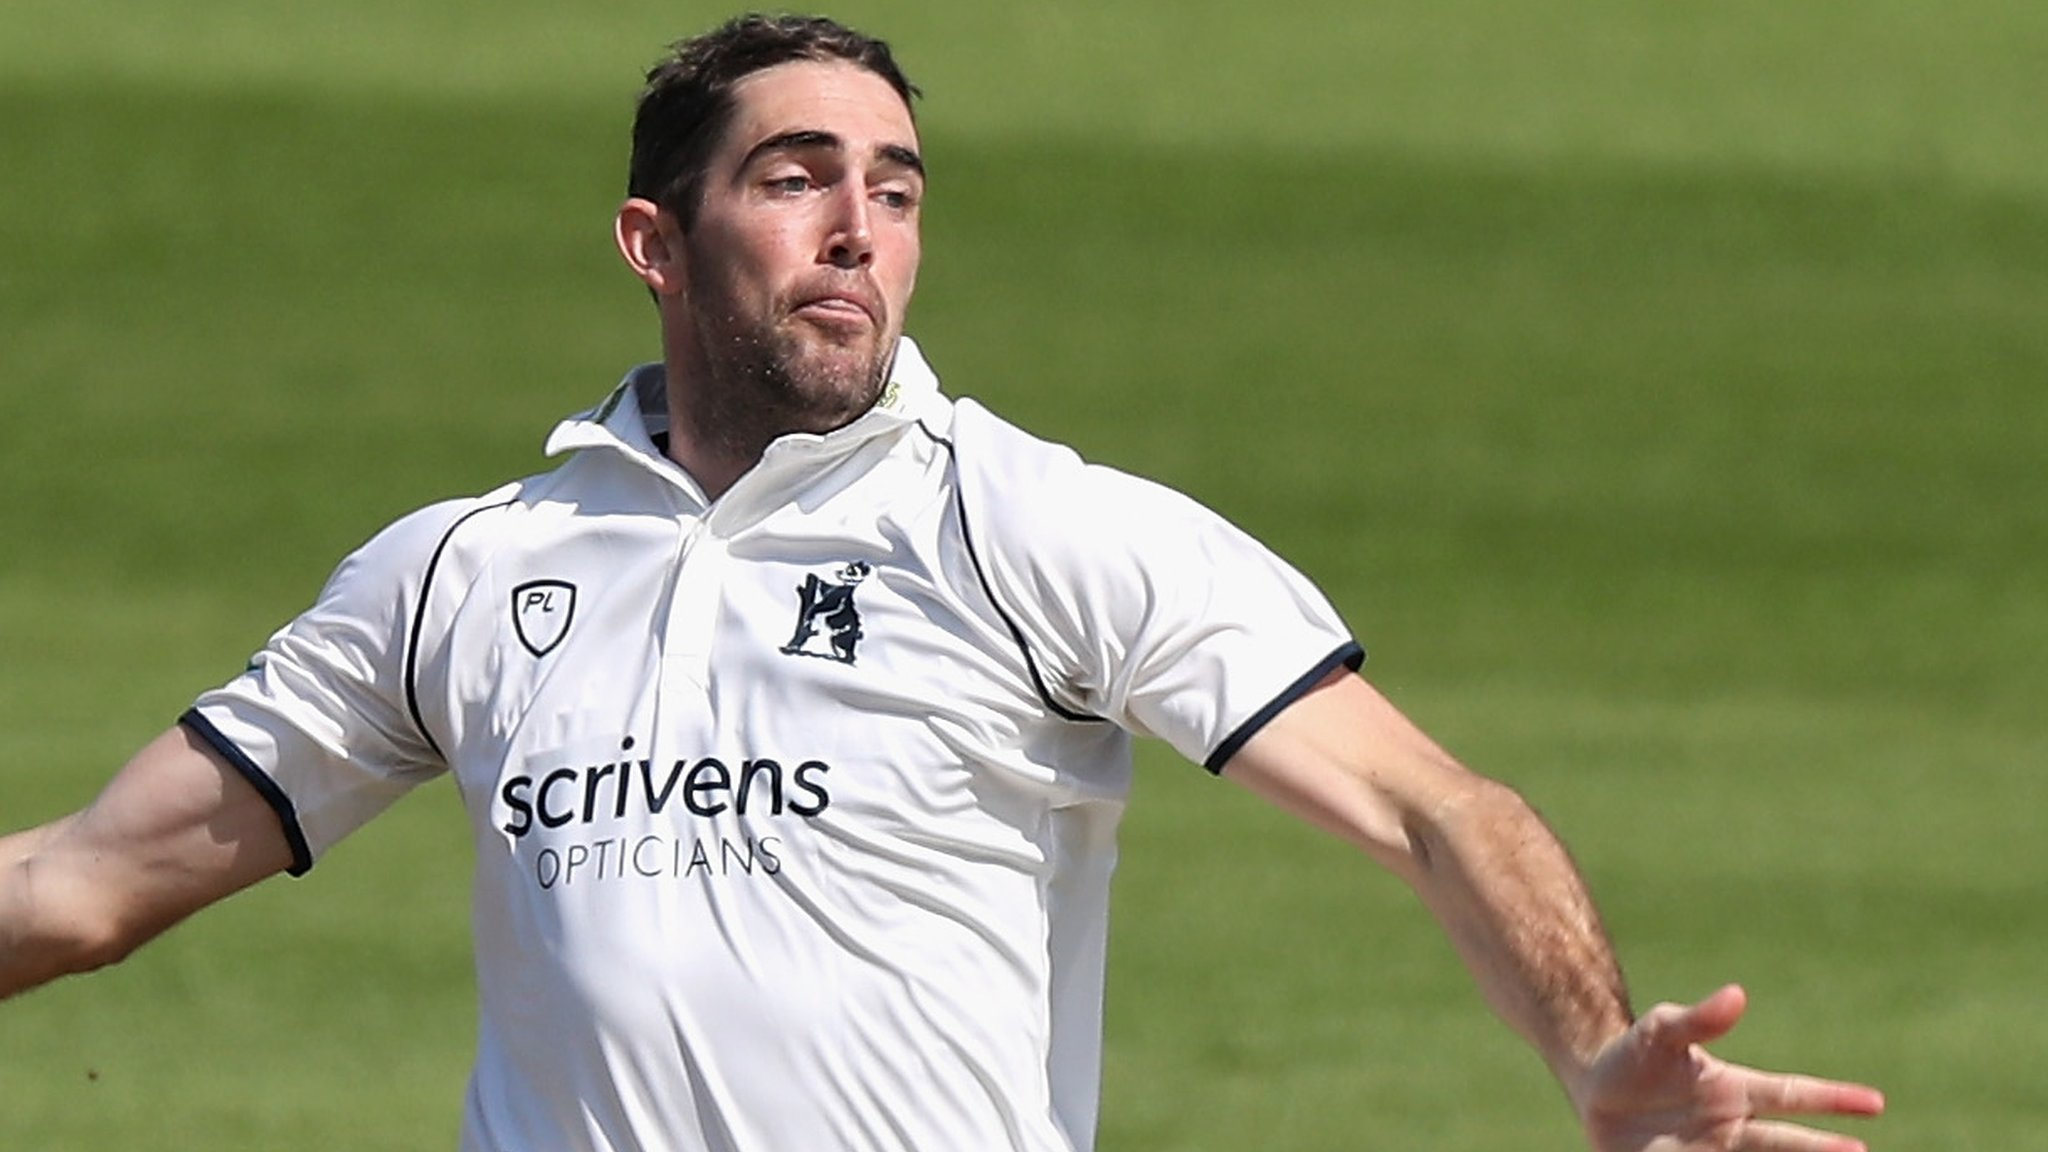 County Championship: Warwickshire bowl out Middlesex as James Fuller hits 71